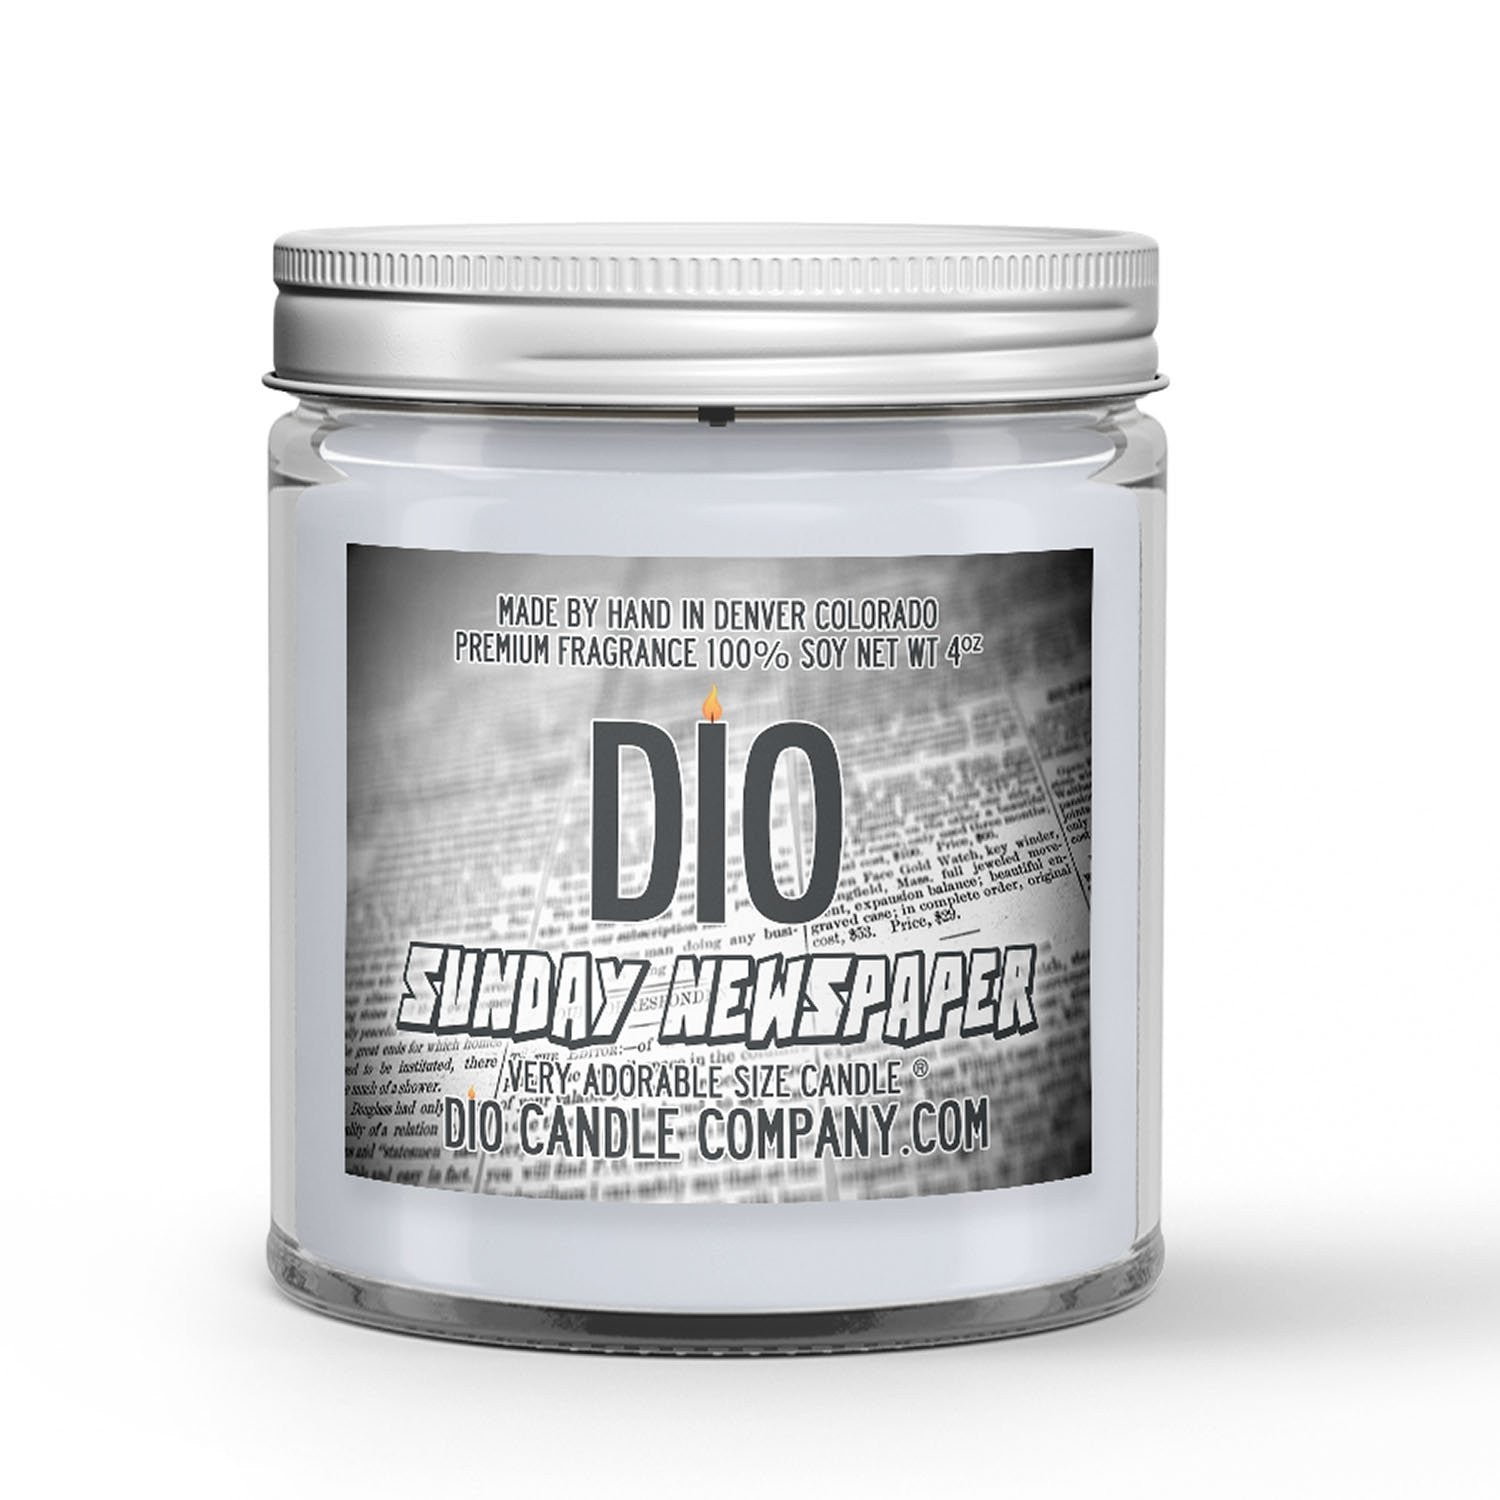 Sunday Newspaper Candle - Newspaper - Dried Ink - 4oz Very Adorable Size Candle® - Dio Candle Company